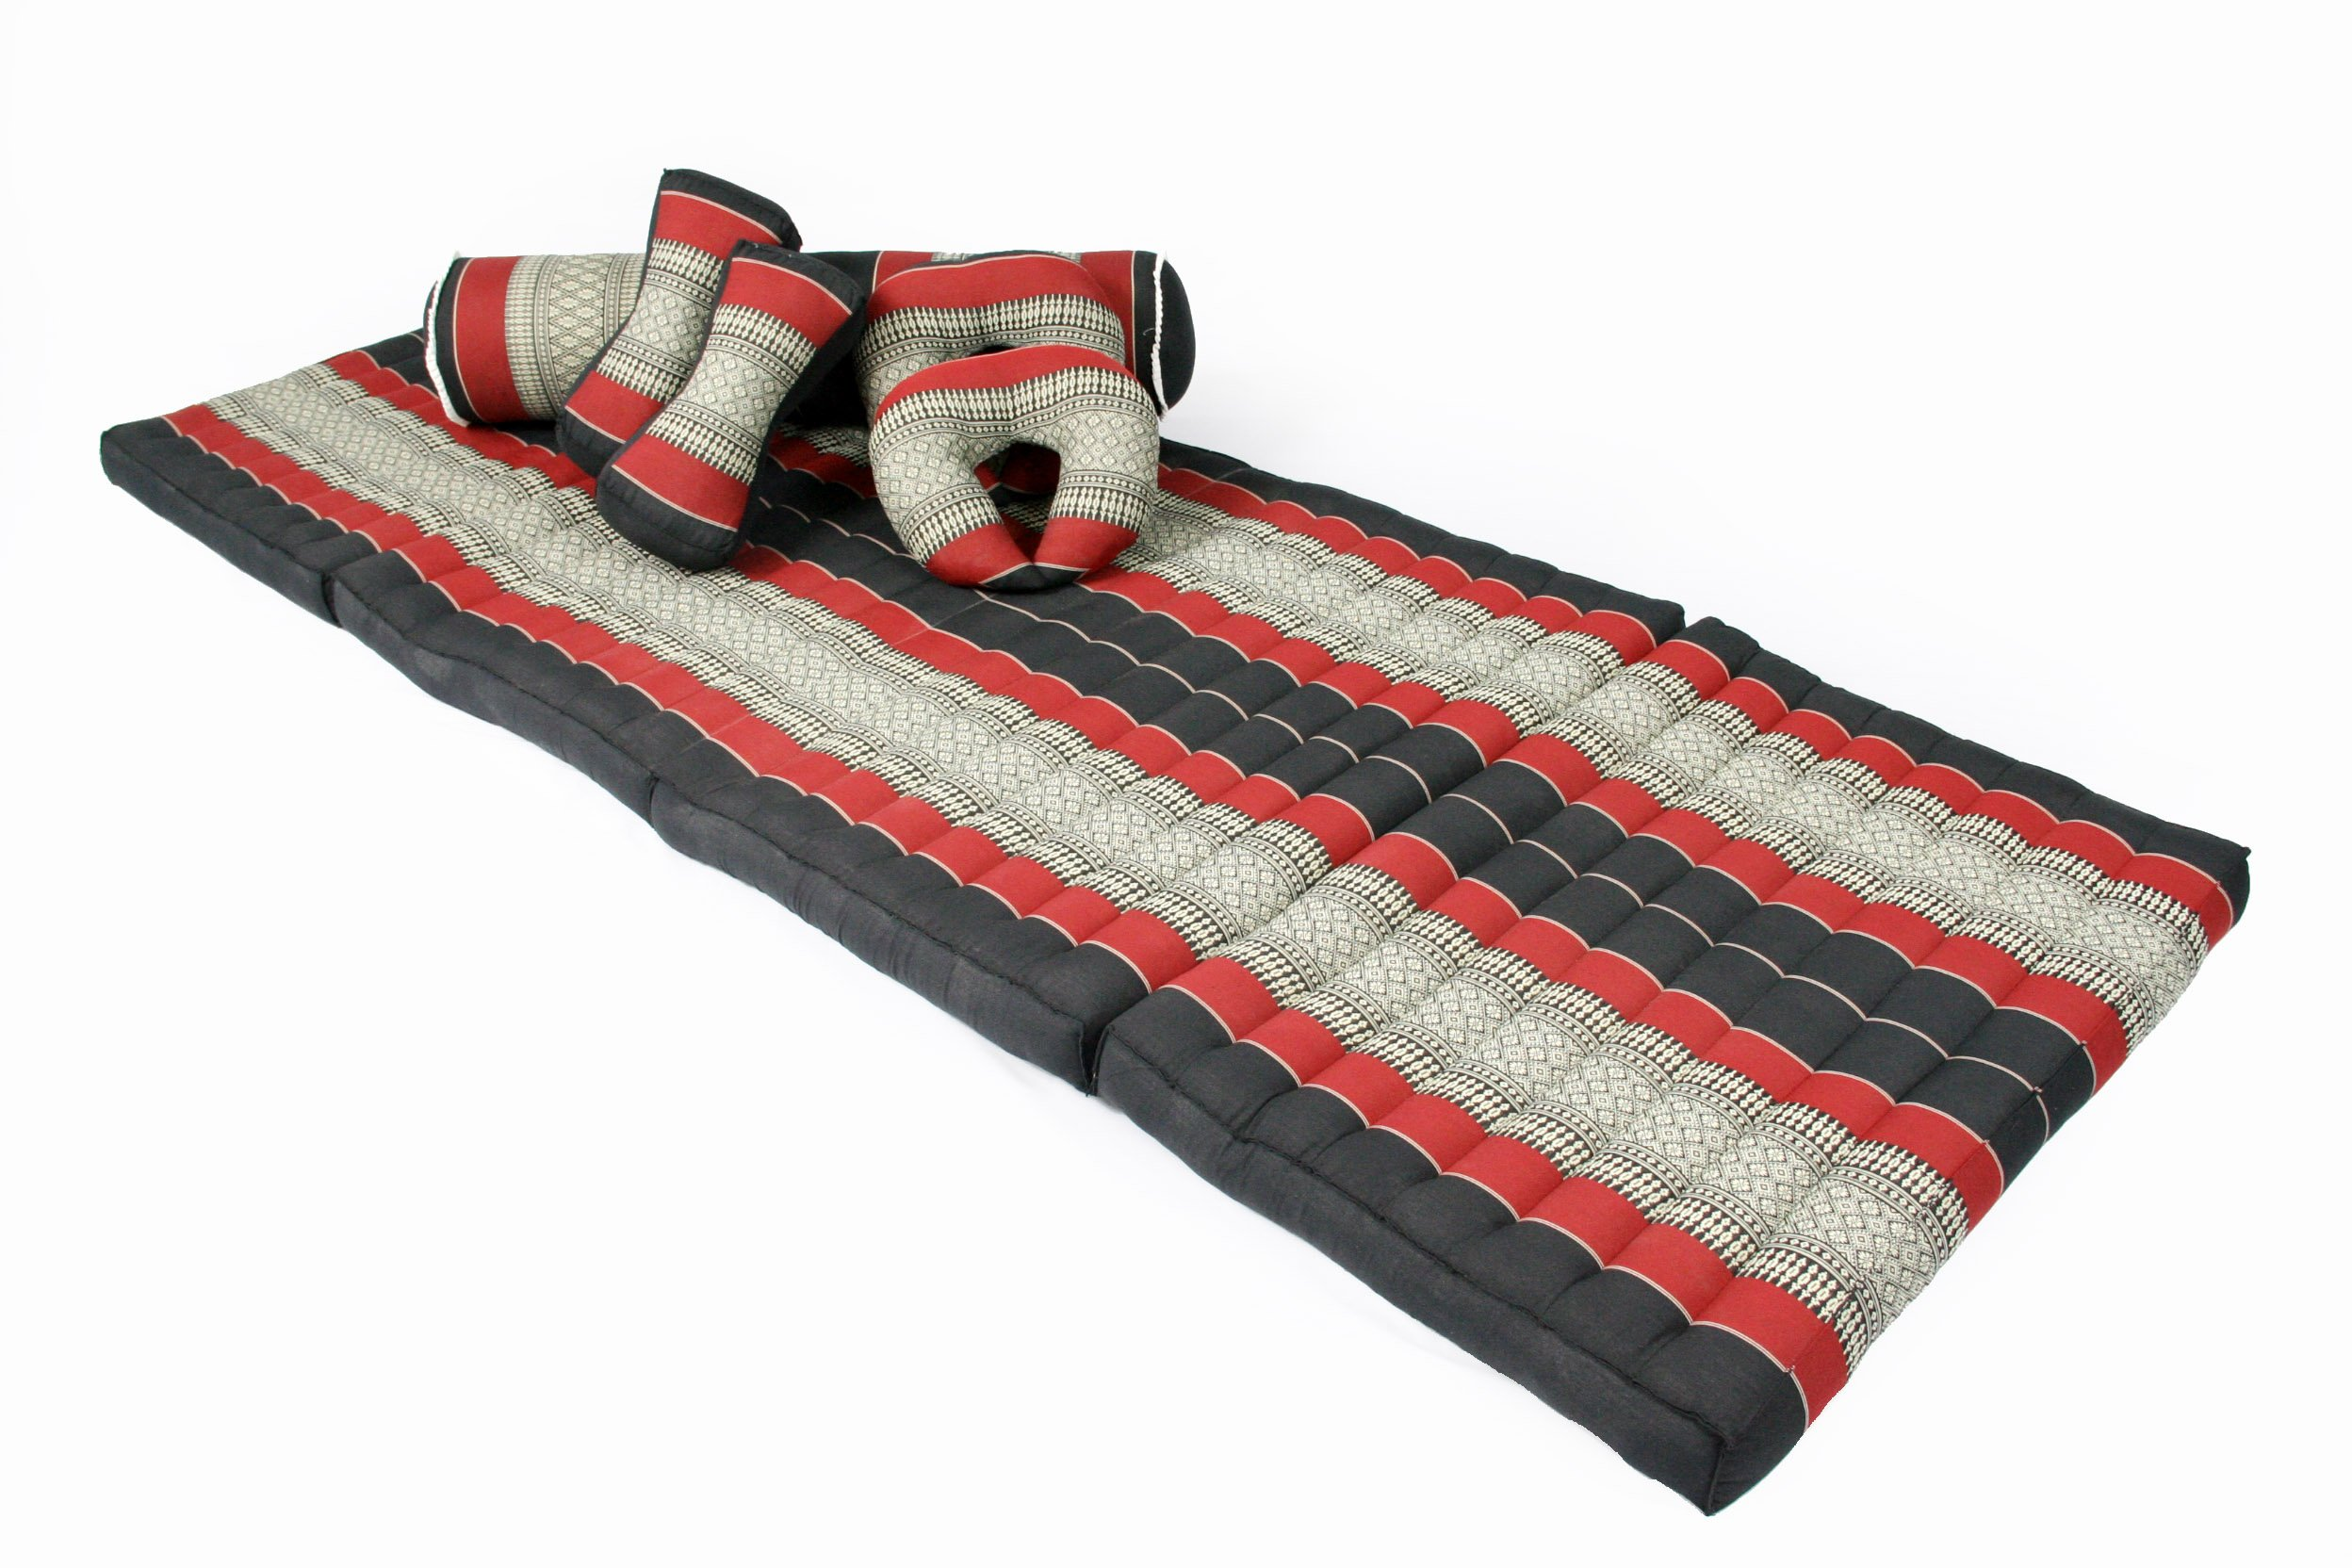 Massage Set III: Foldable Matress 78x31 inches + Bolster 31x7 inches + 4 Pillows, Traditional Thai Design, kapok-filled, black/red by Handelsturm